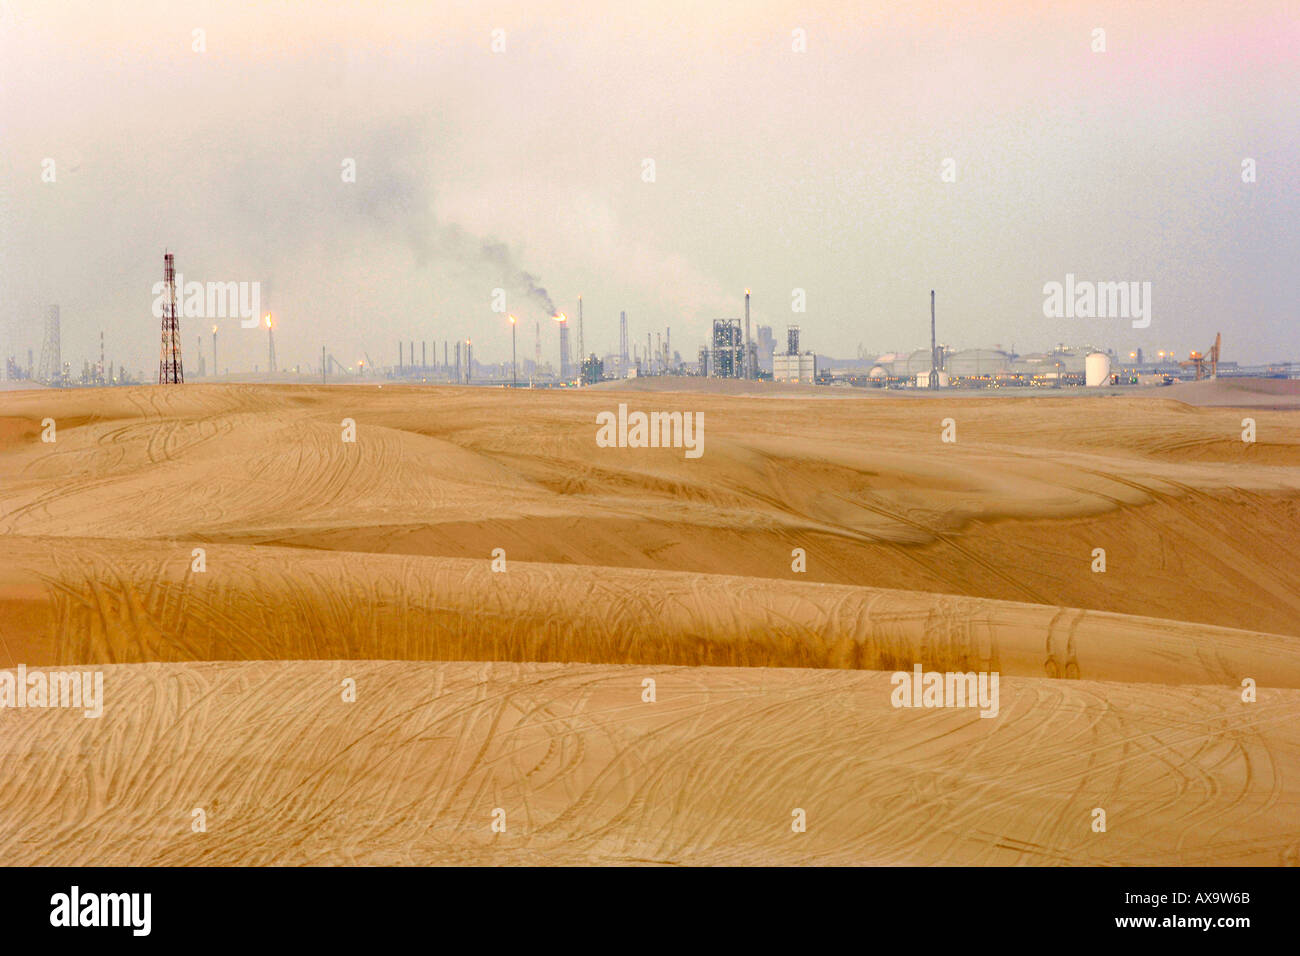 Industrial refinery seen from the Inland Sea 'Khor al Adaid' in southern Qatar. - Stock Image